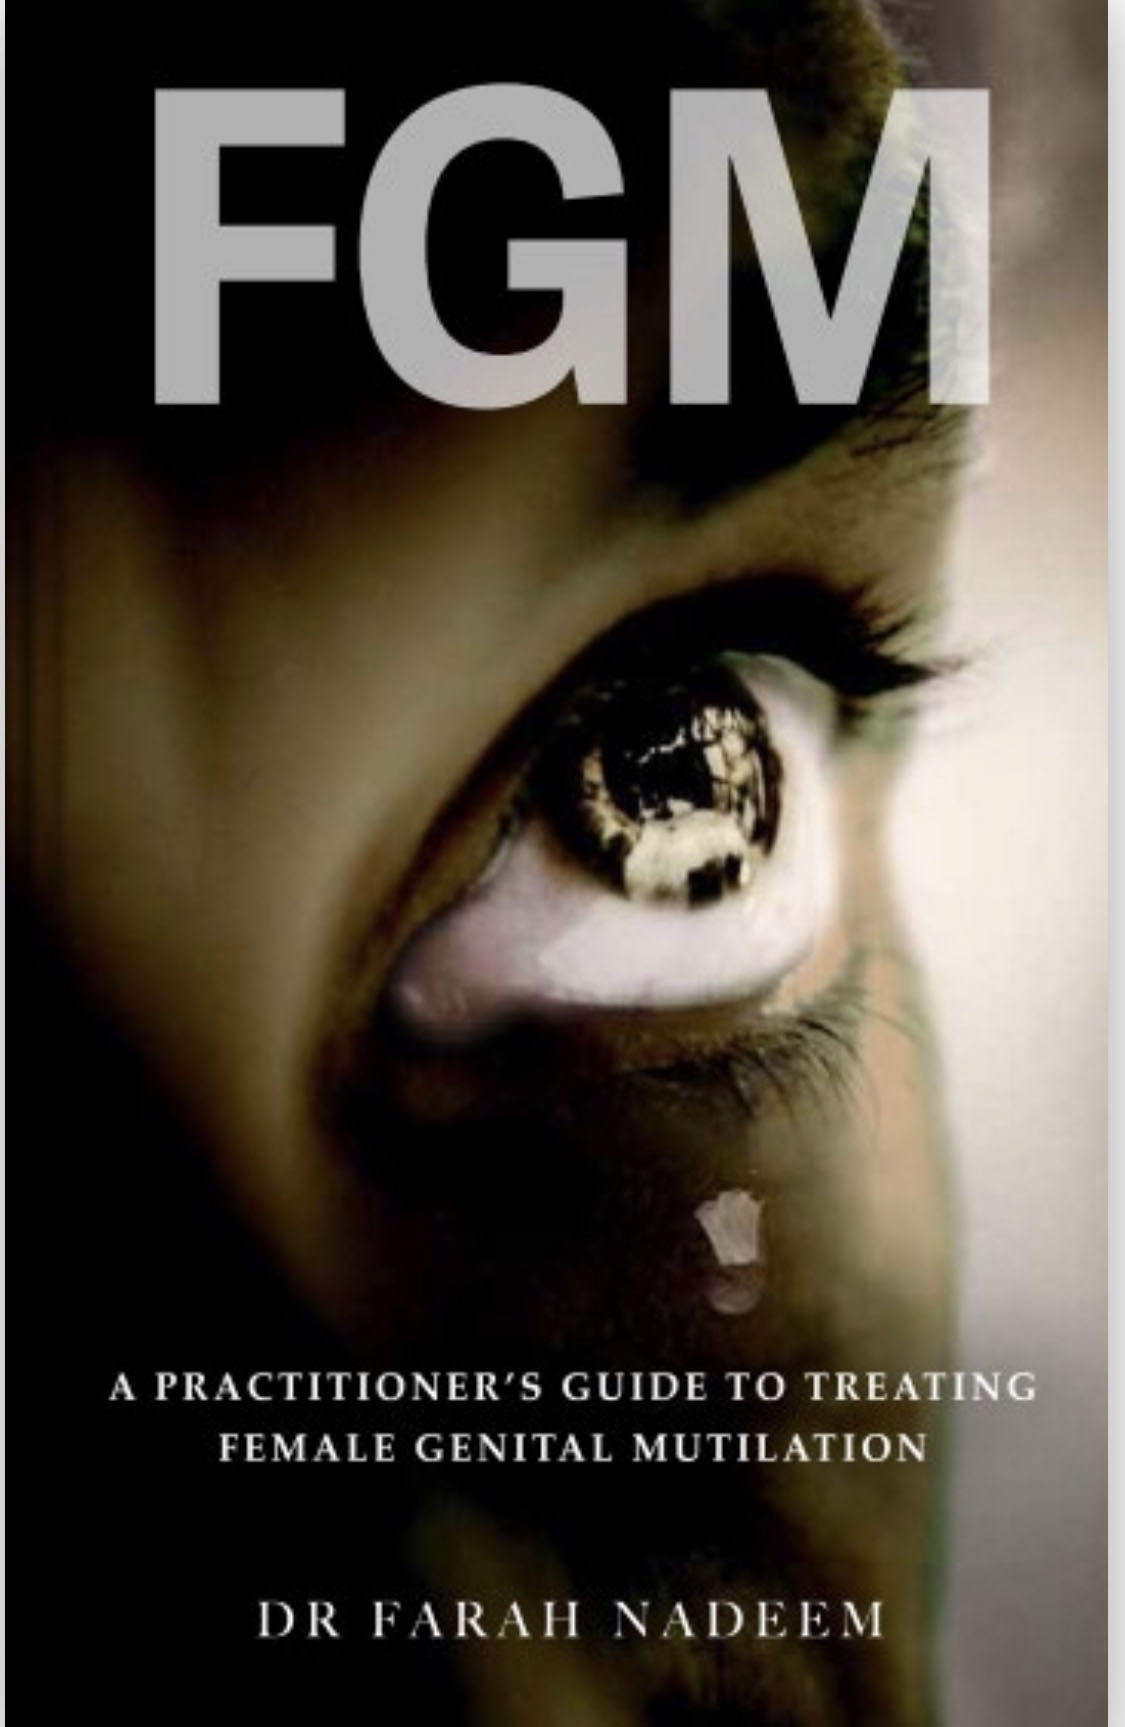 Image - Psychology alumna publishes book to aid psychologists with treatment of gender violence